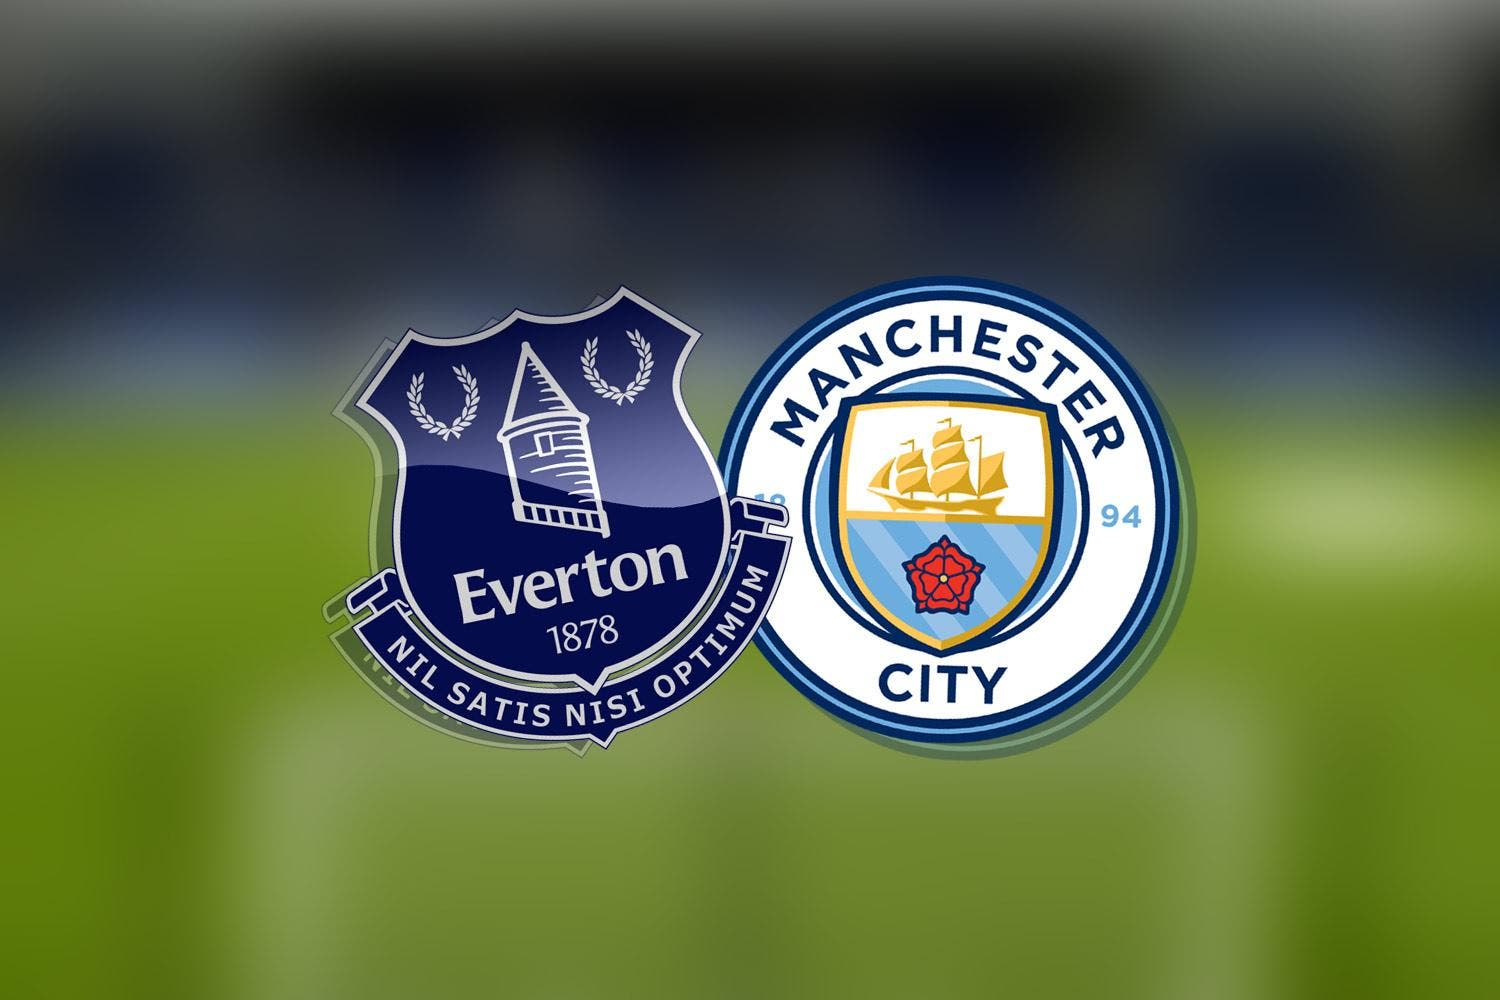 Manchester City Vs Everton Live Stream, Prediction And Team News